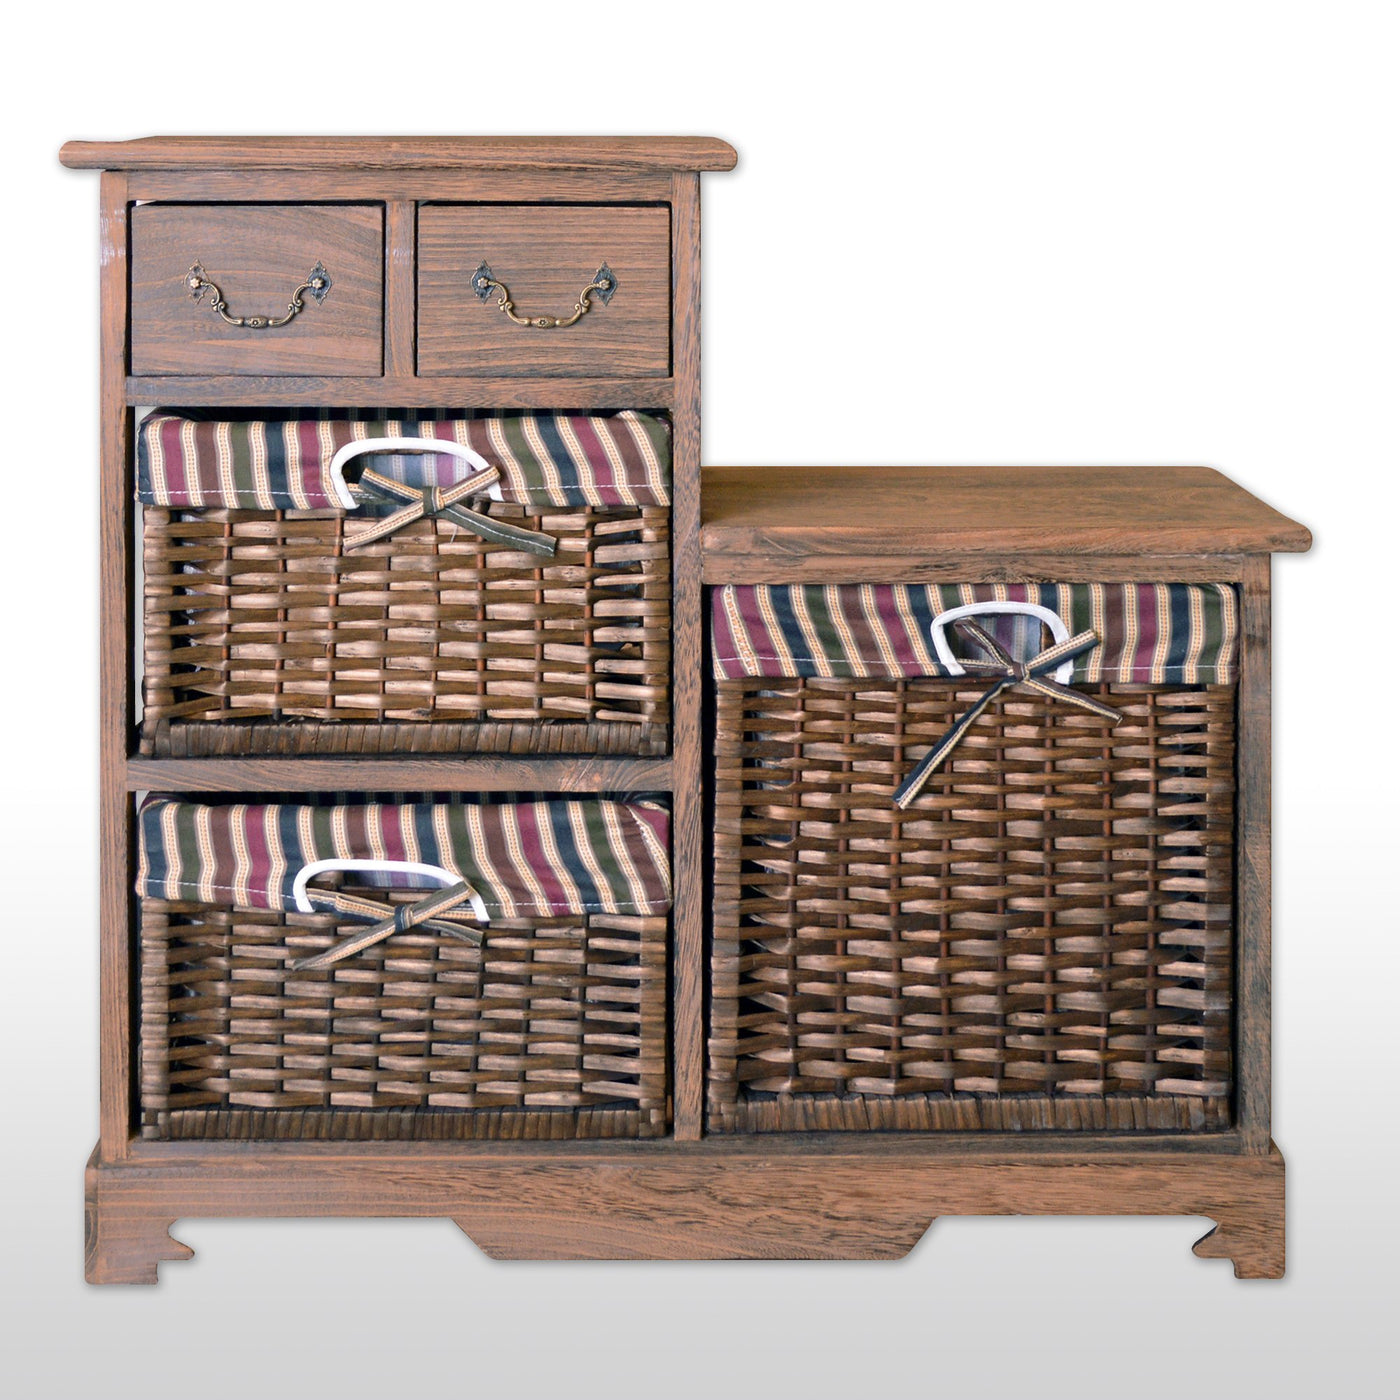 Storage Cabinet With 2 Drawers 3 Wicker Baskets 28 Tall In Antique Walnut Finish